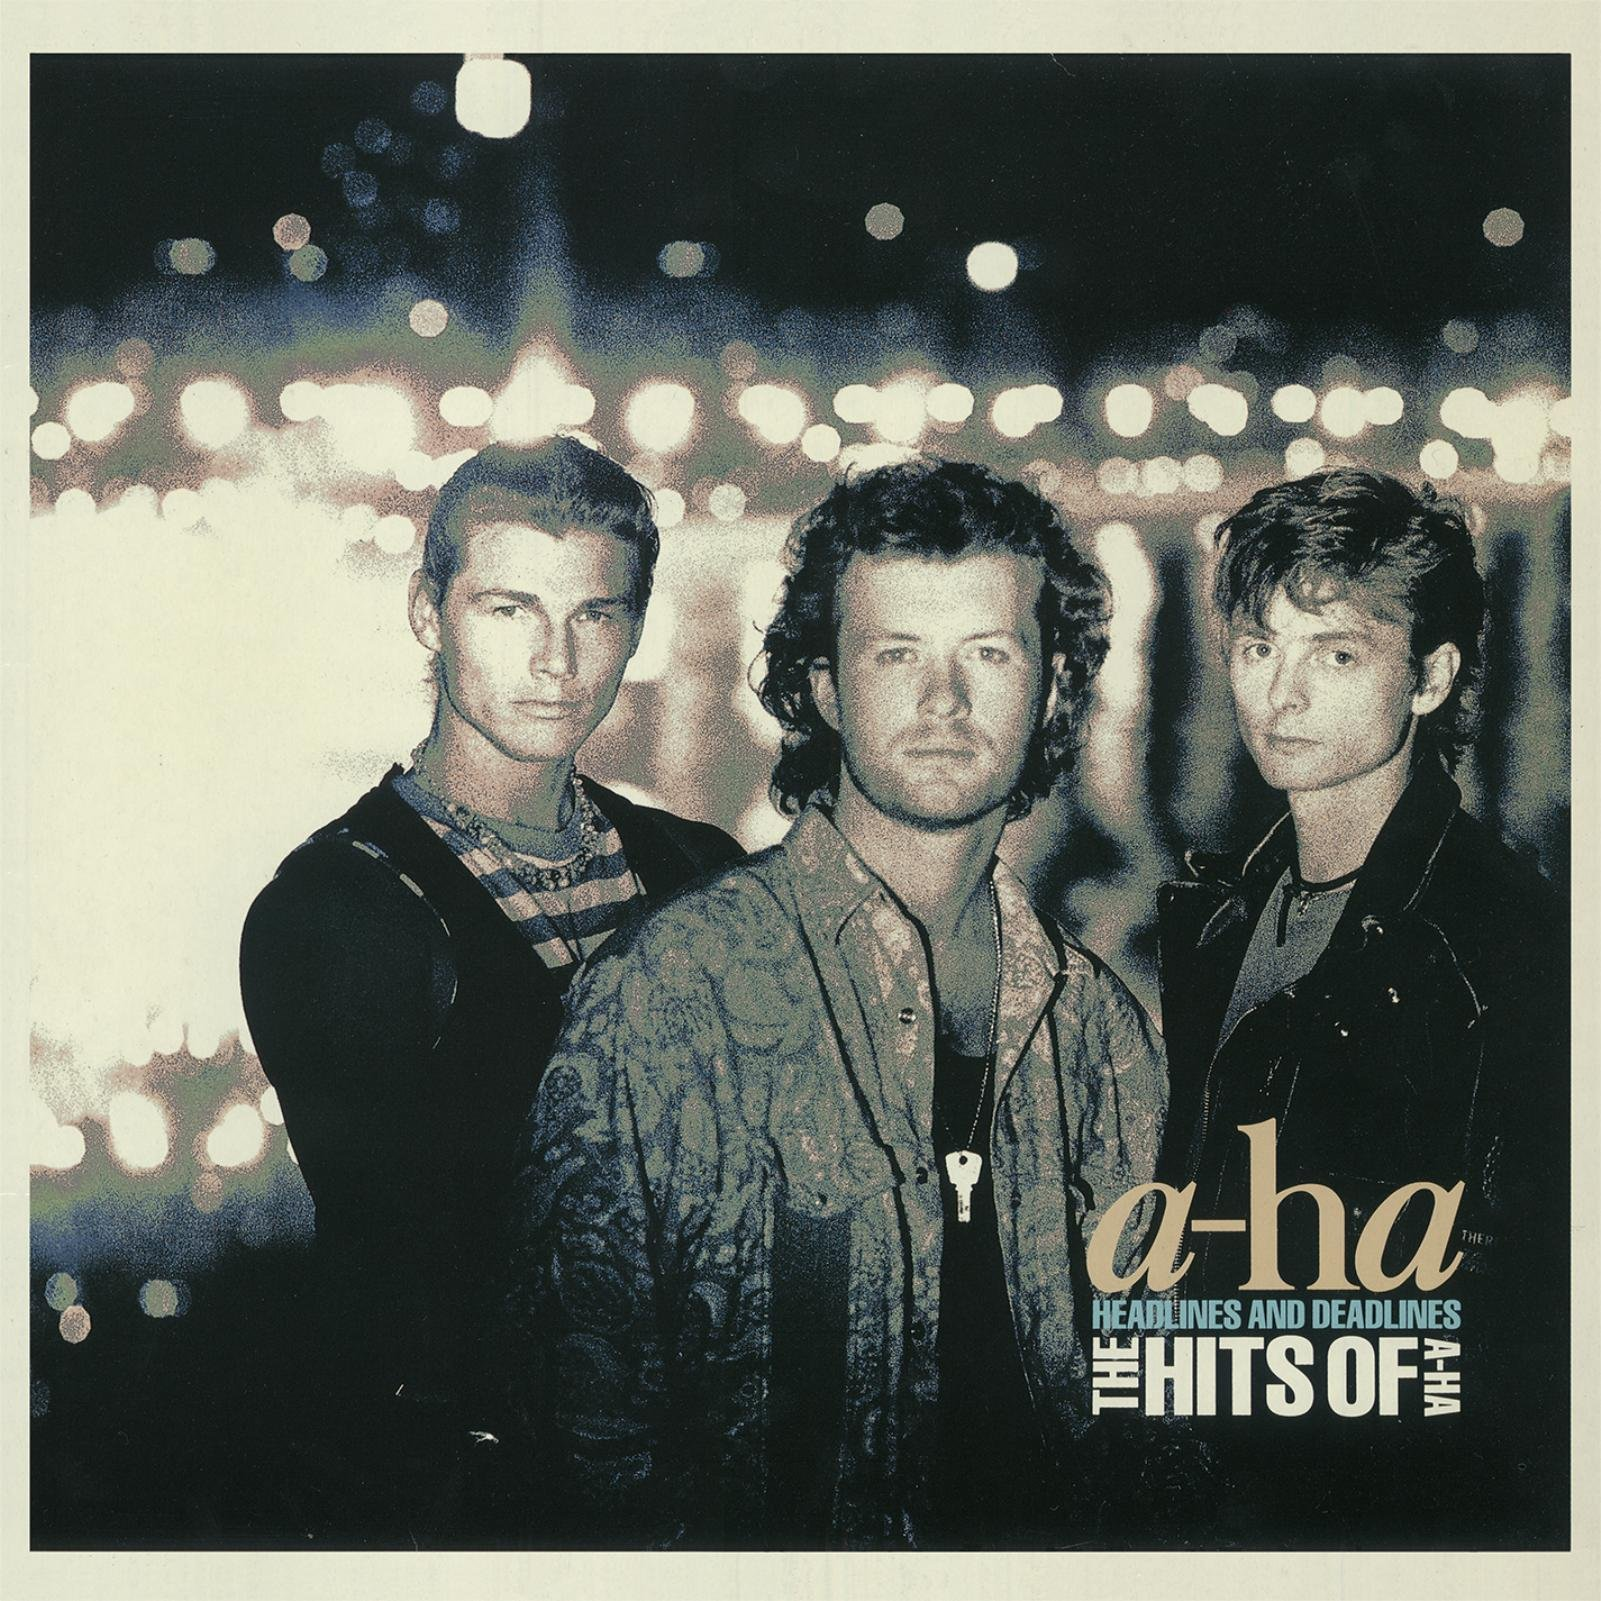 A-Ha – Headlines And Deadlines The Hits Of A-ha (1991) [FLAC]